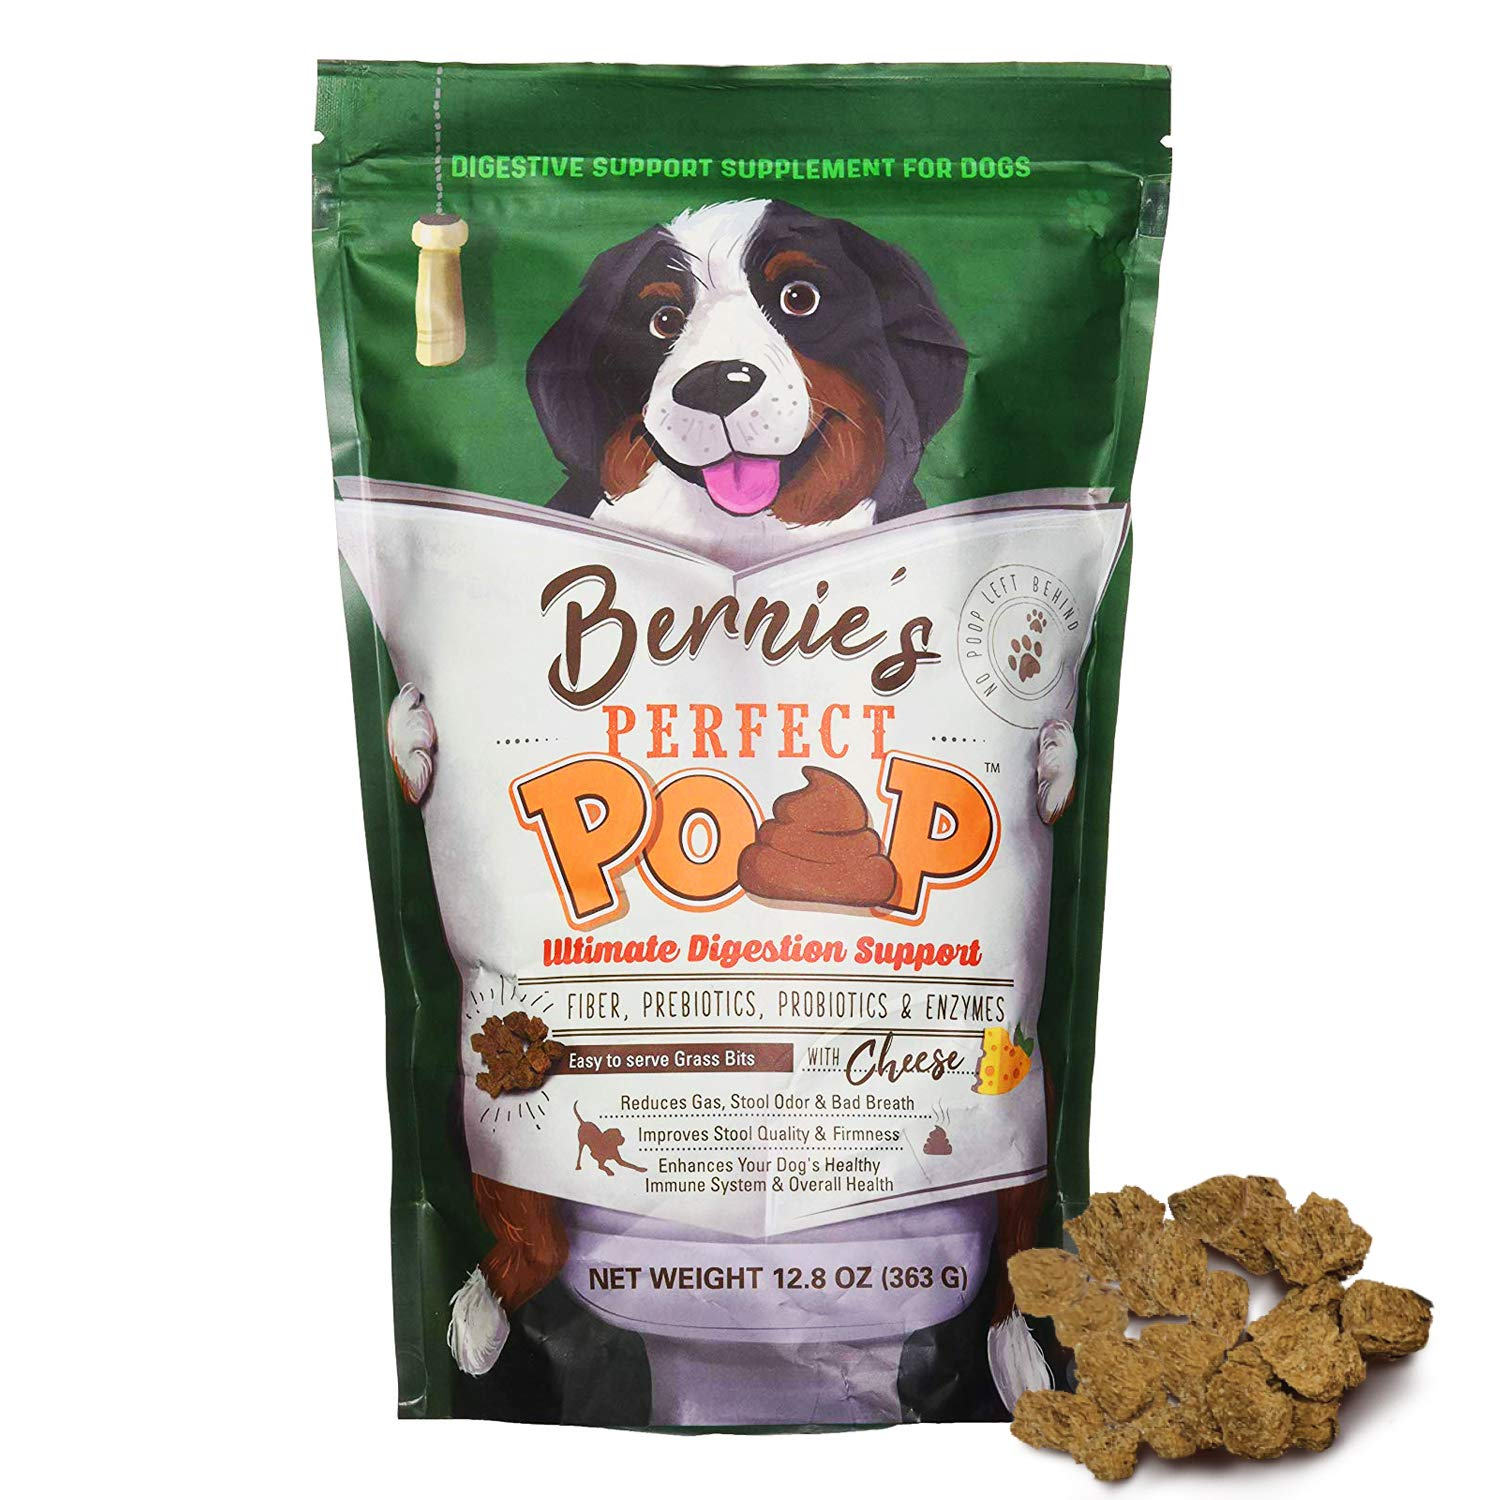 Bernie's Perfect Poop Digestion & General Health Supplement for Dogs: Fiber, Prebiotics, Probiotics & Enzymes Relieves Digestive Conditions, Optimizes Stool, and Improves Overall Health & Wellness by Bernie's Perfect Poop